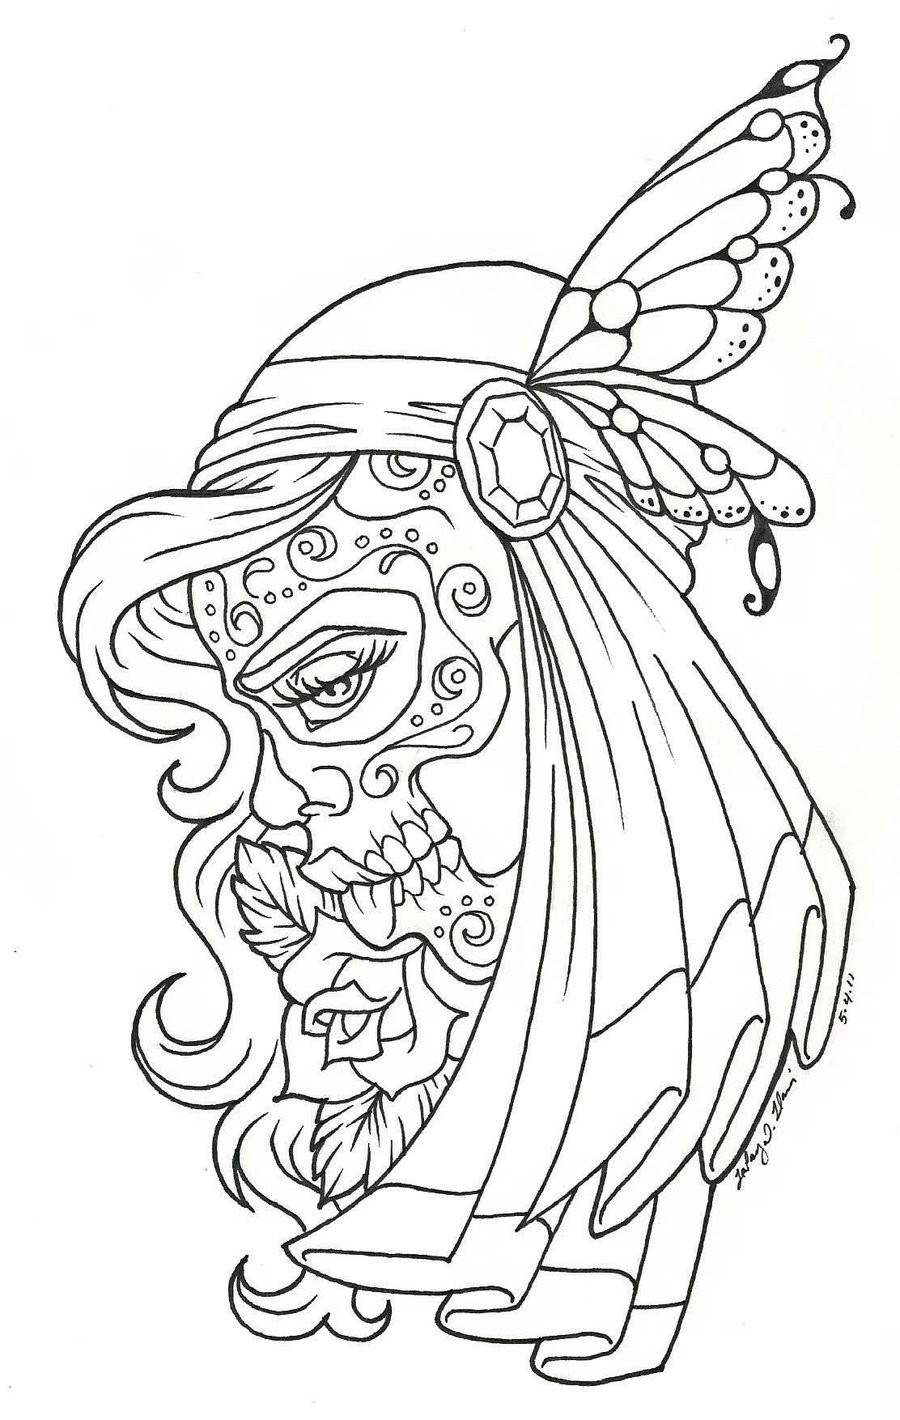 900x1420 Cool Day The Dead Coloring Pages Free Free Coloring Pages Download